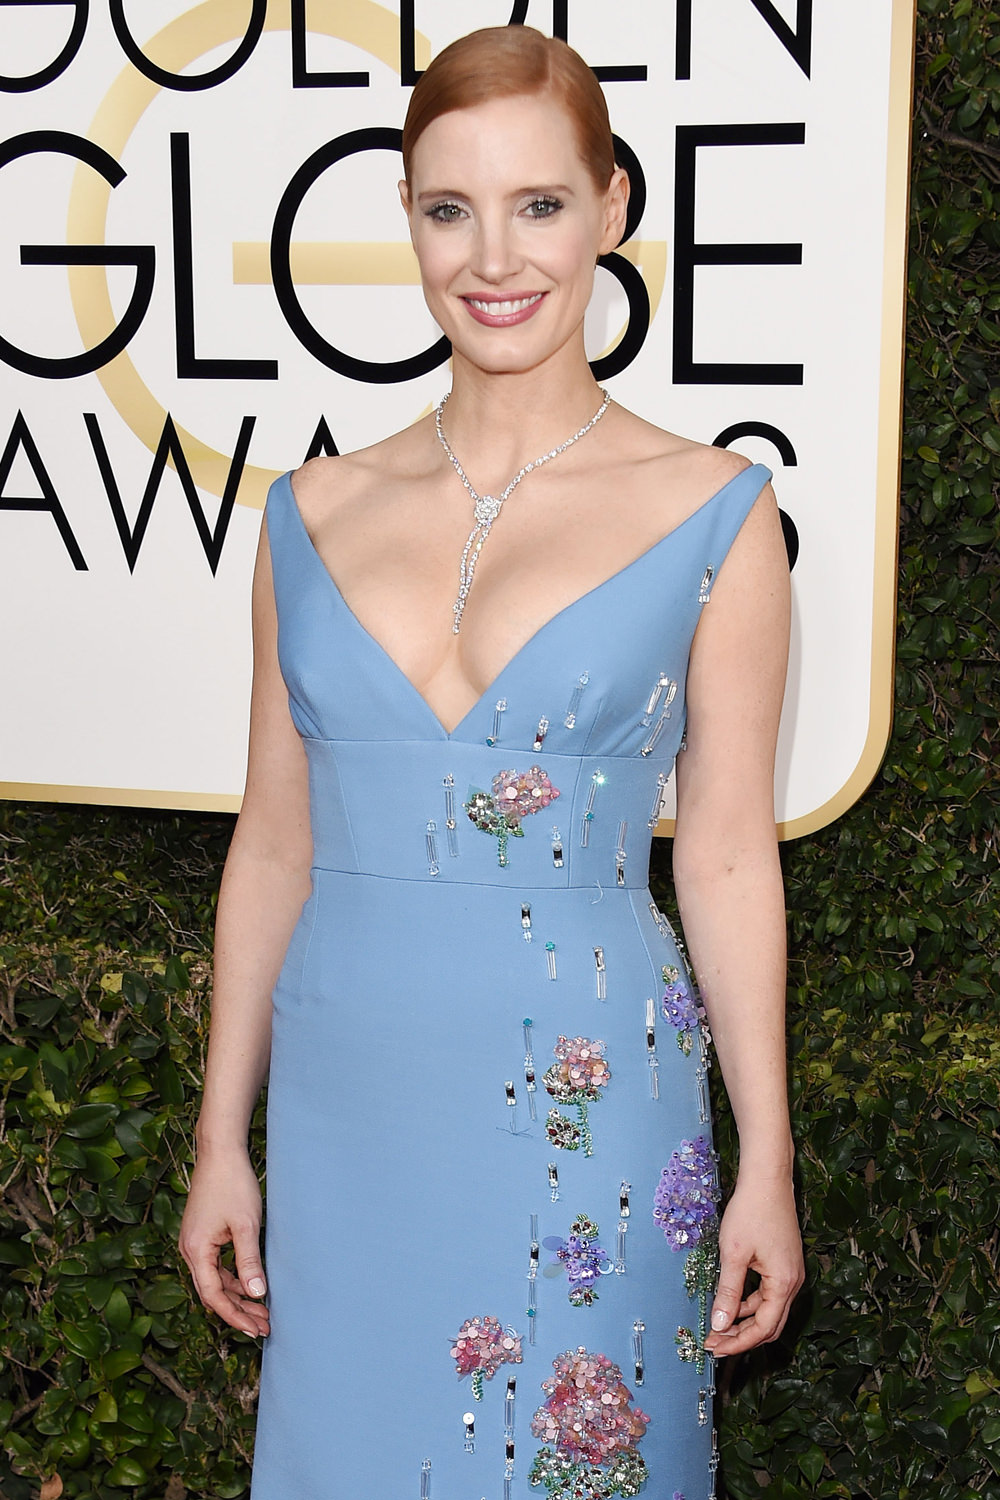 Jessica-Chastain-Miss-Sloane2017-Golden-Globe-Awards-Red-Carpet-Fashion-Prada-Tom-Lorenzo-Site-1.jpg